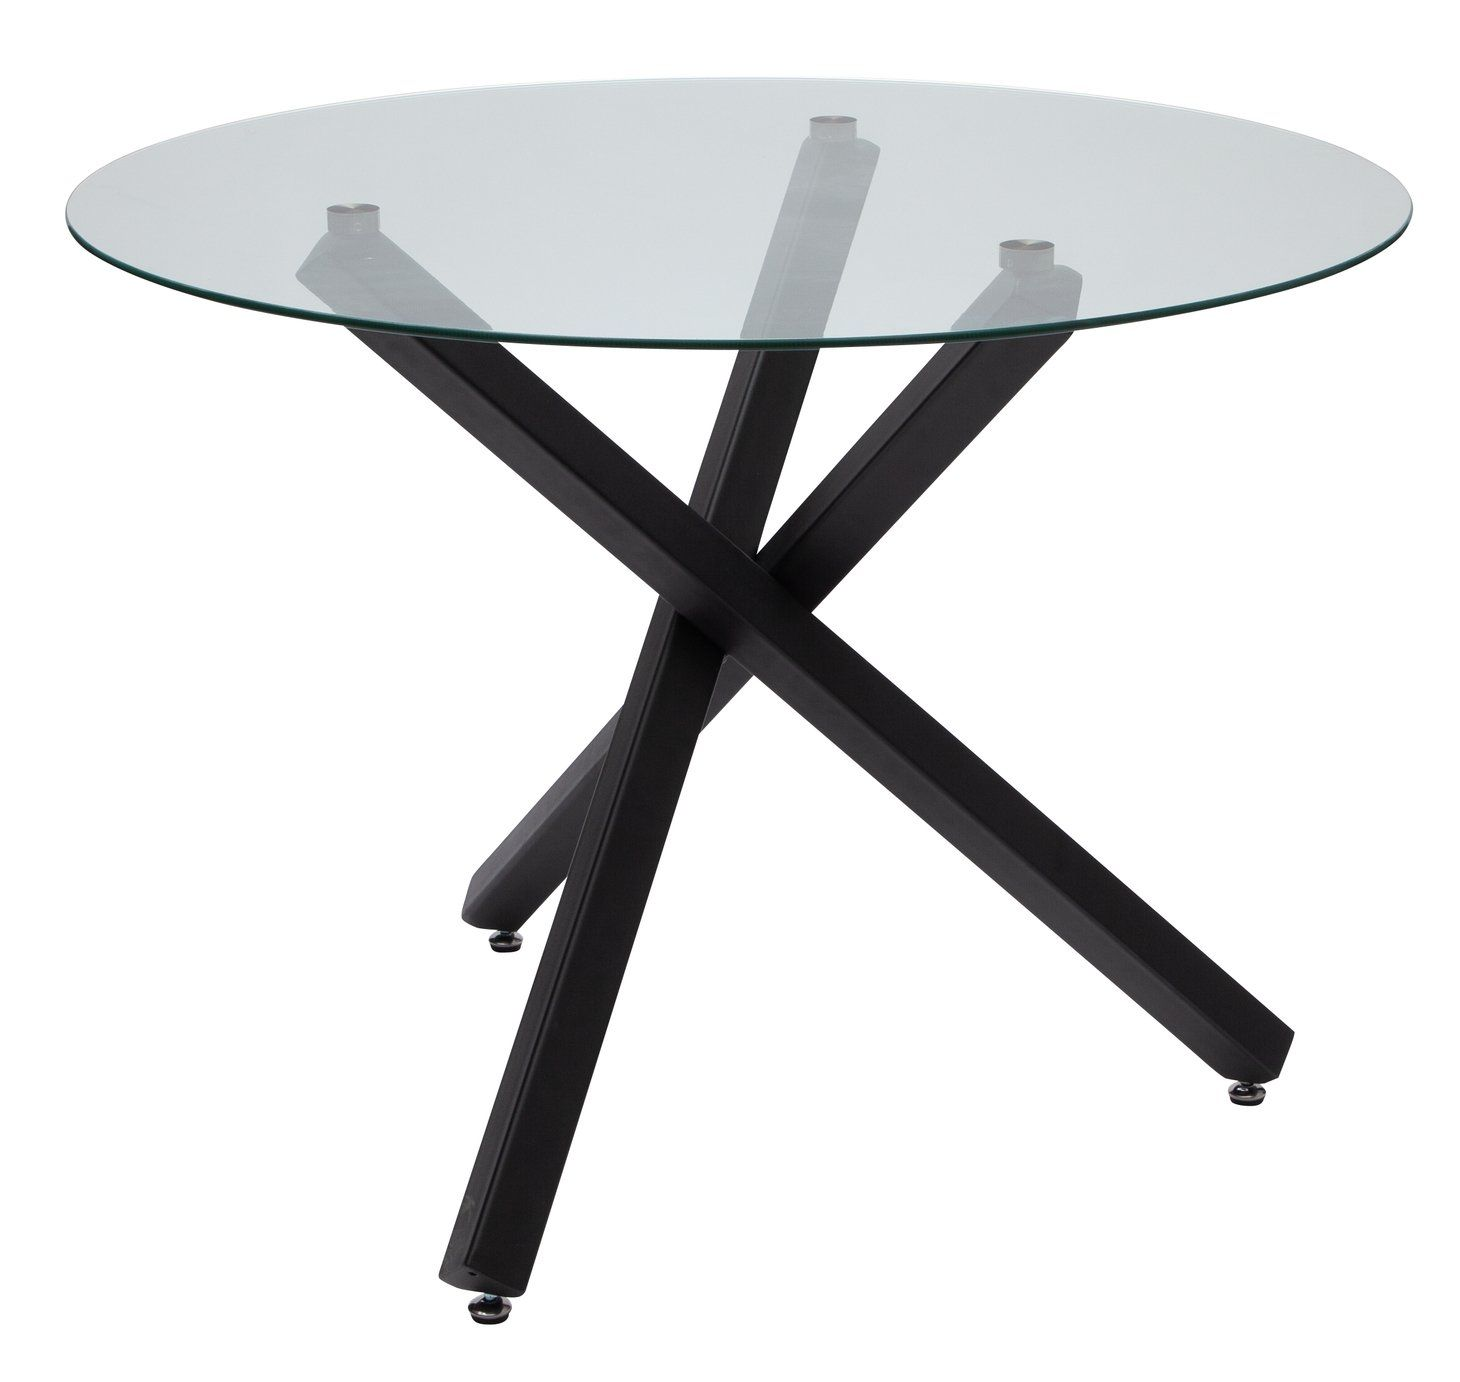 Argos Home Ava Glass 4 Seater Round Dining Table Glass Round Dining Table Round Dining Table Round Dining [ 1382 x 1460 Pixel ]